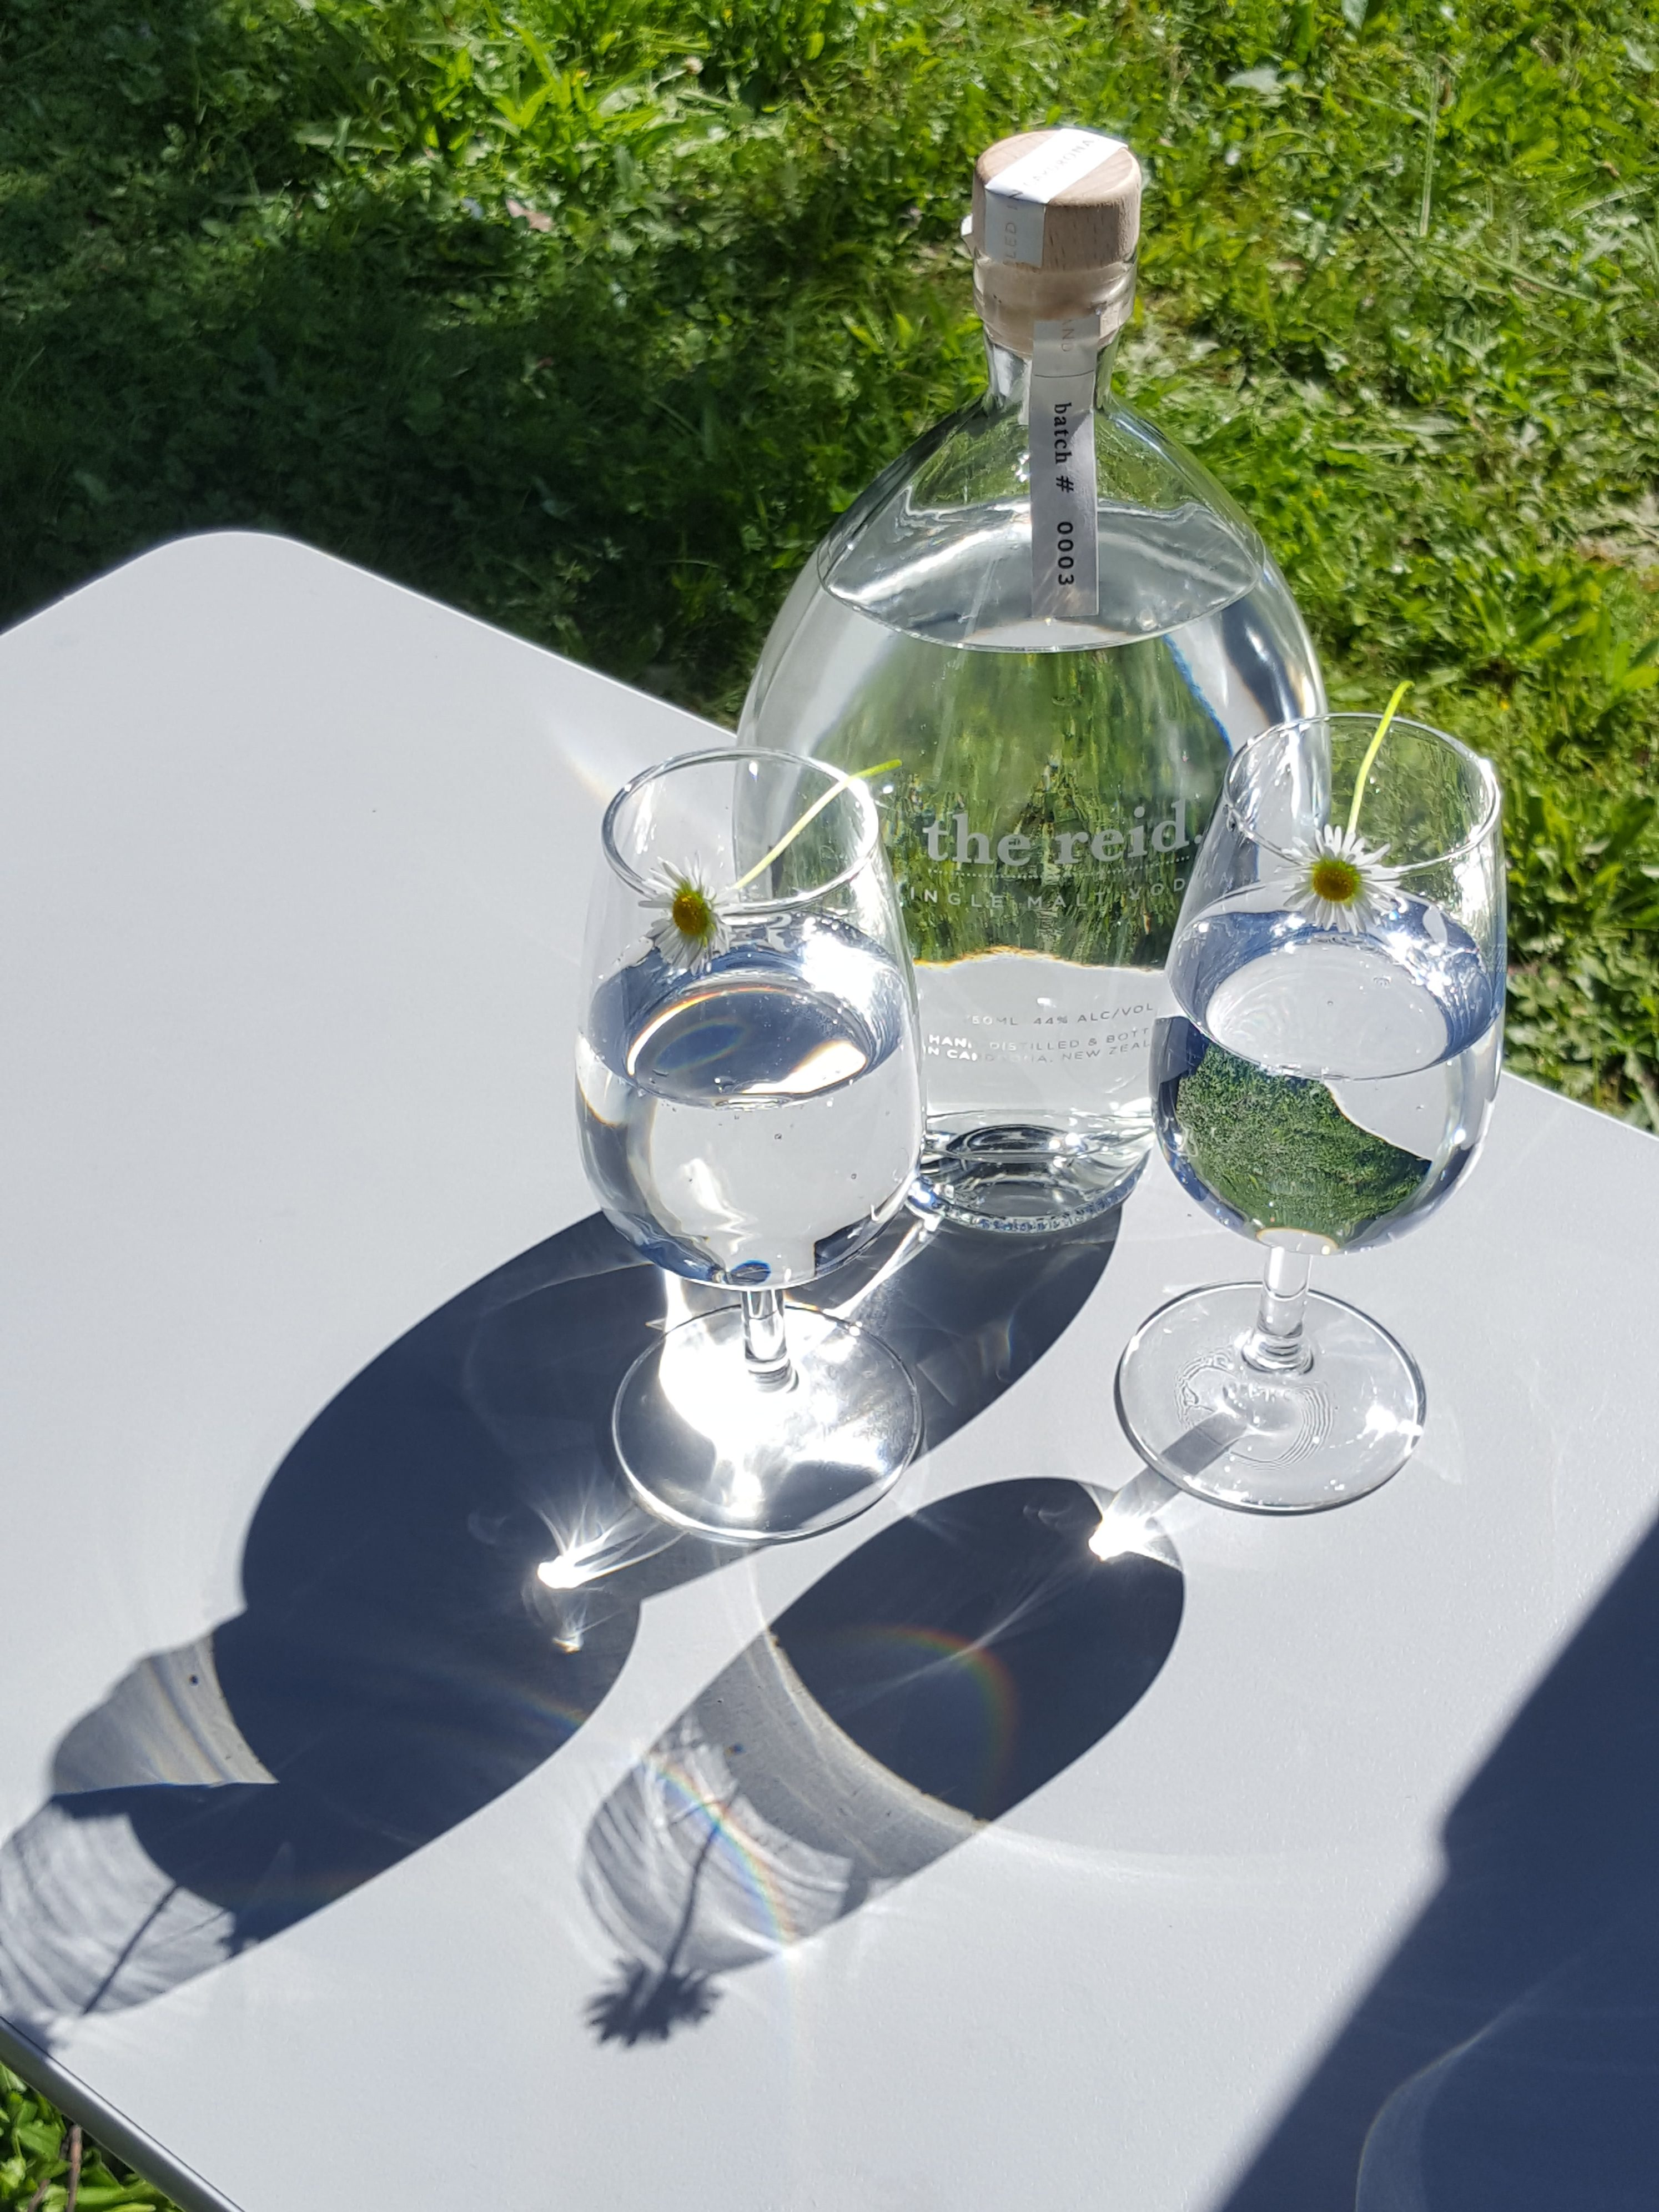 clear glass bottle and two glasses with clear liquid in, castig shadows in the sunlight on a grey table